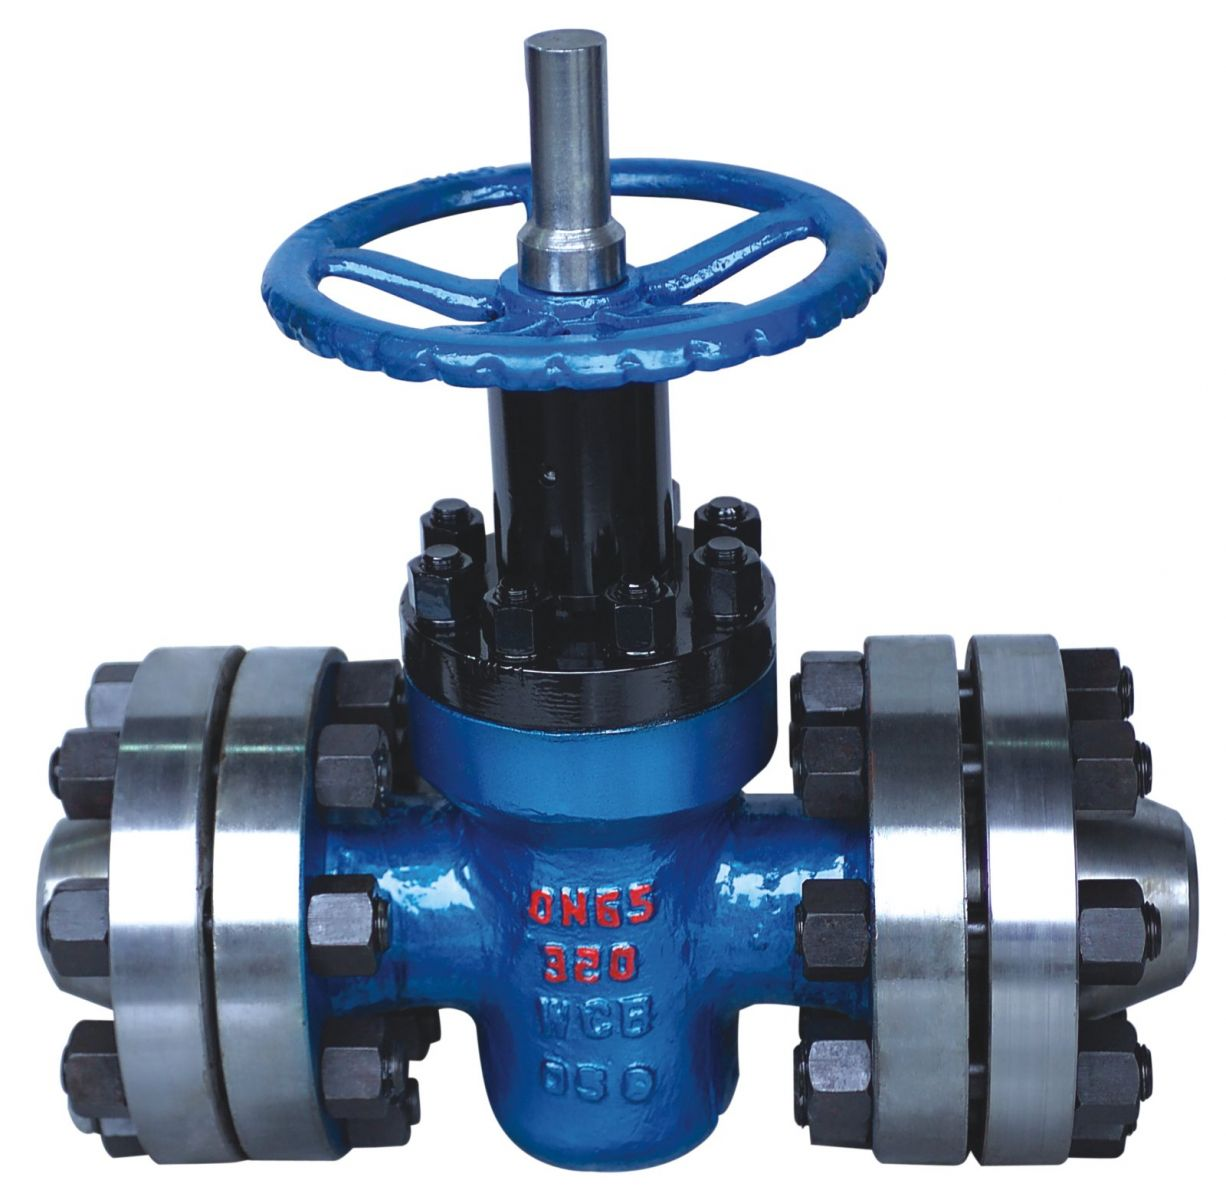 Materials Used for Liner of Valves